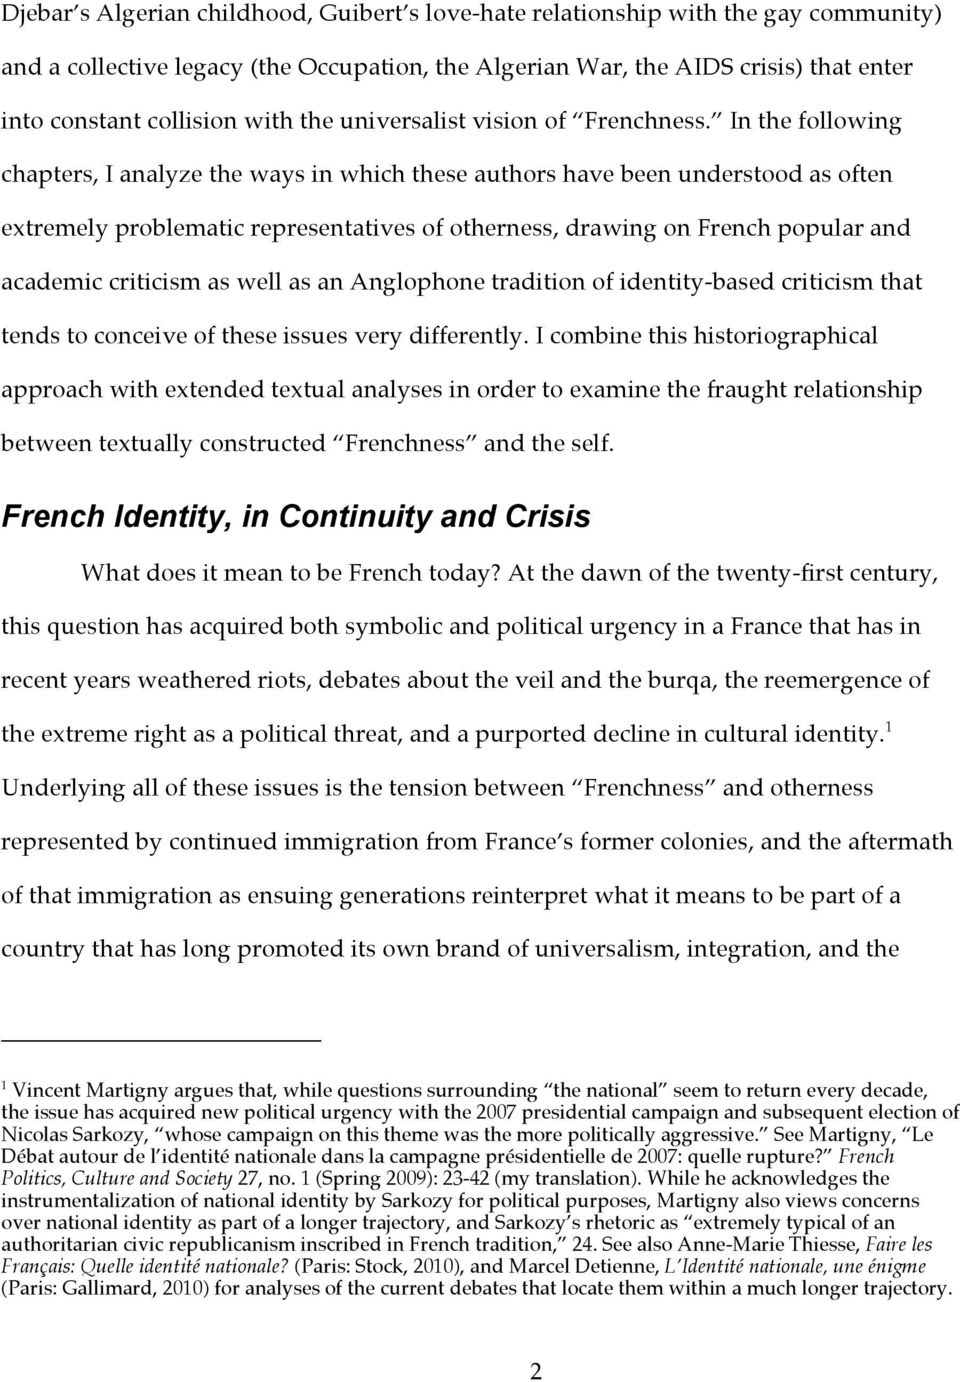 In the following chapters, I analyze the ways in which these authors have been understood as often extremely problematic representatives of otherness, drawing on French popular and academic criticism